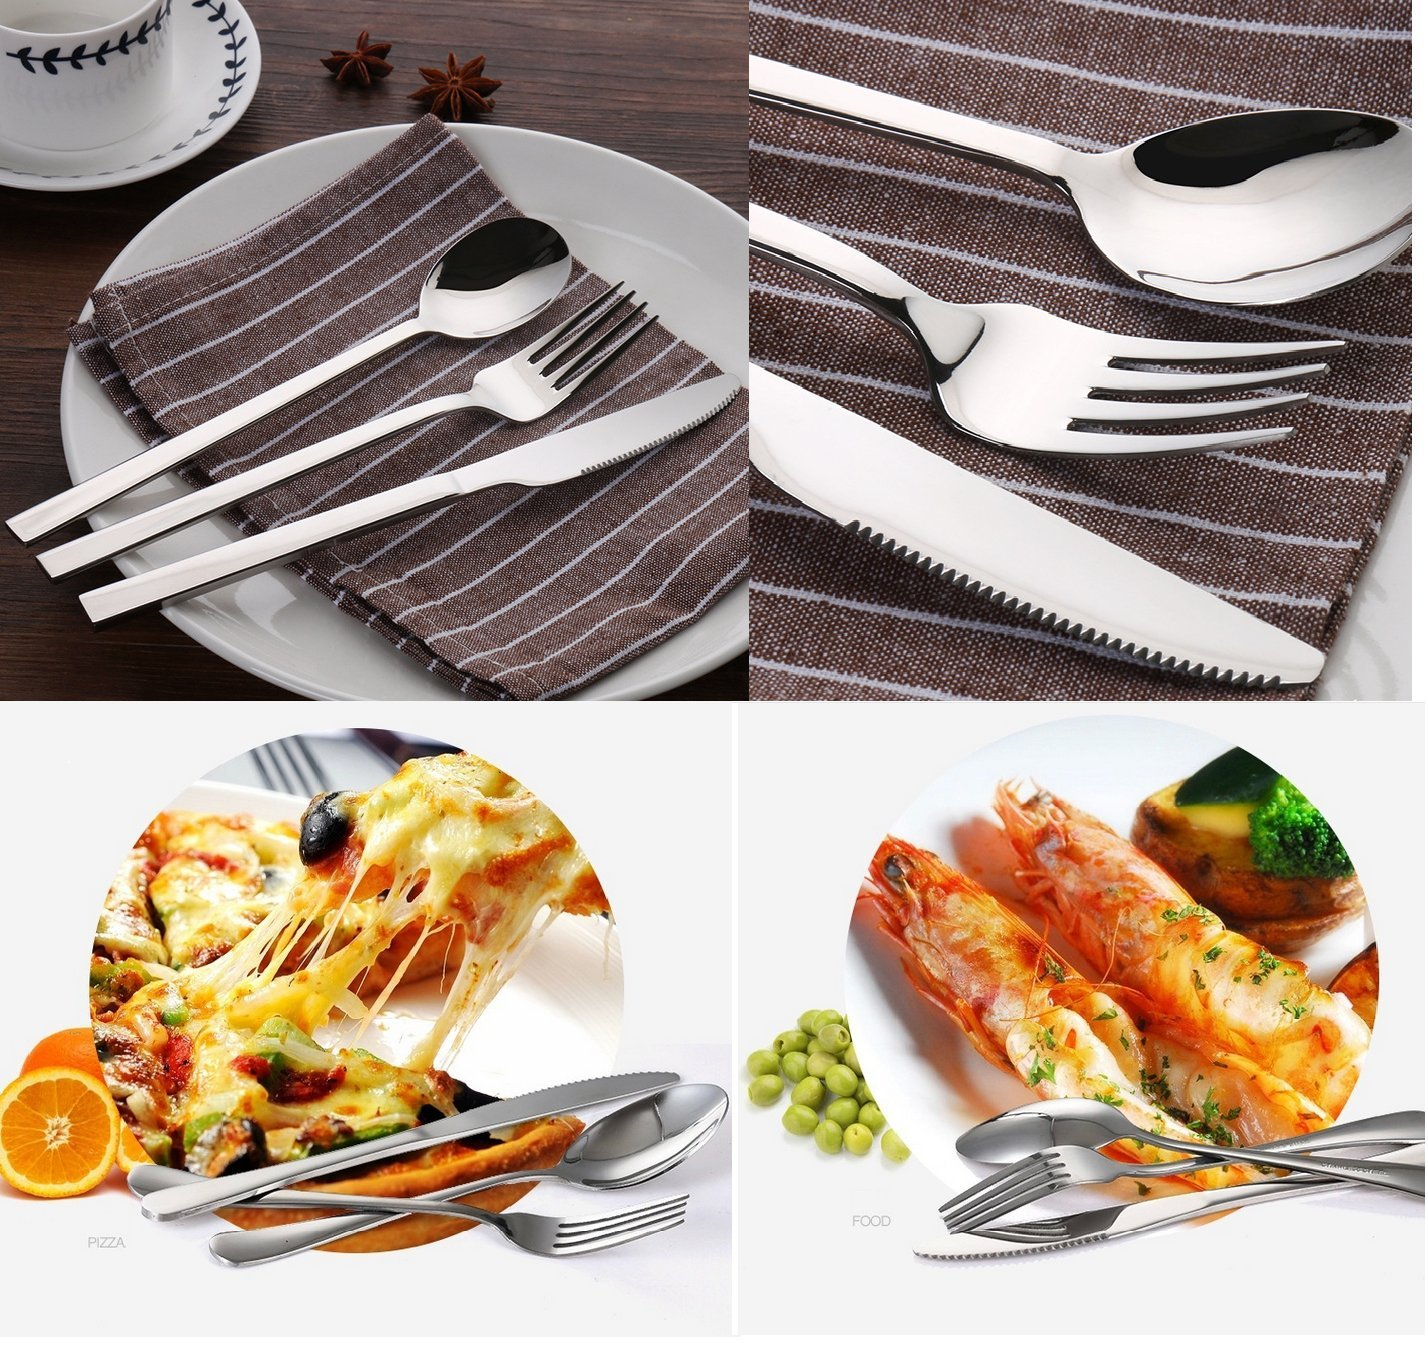 Rainbow - Ye 18 Pieces Stainless Steel Cutlery Set Mirror Polished Tableware Set Utensil Set Include Knives, Forks, Spoons for The Steak,is Kitchen Hotel Restaurant Wedding Party Best Choice